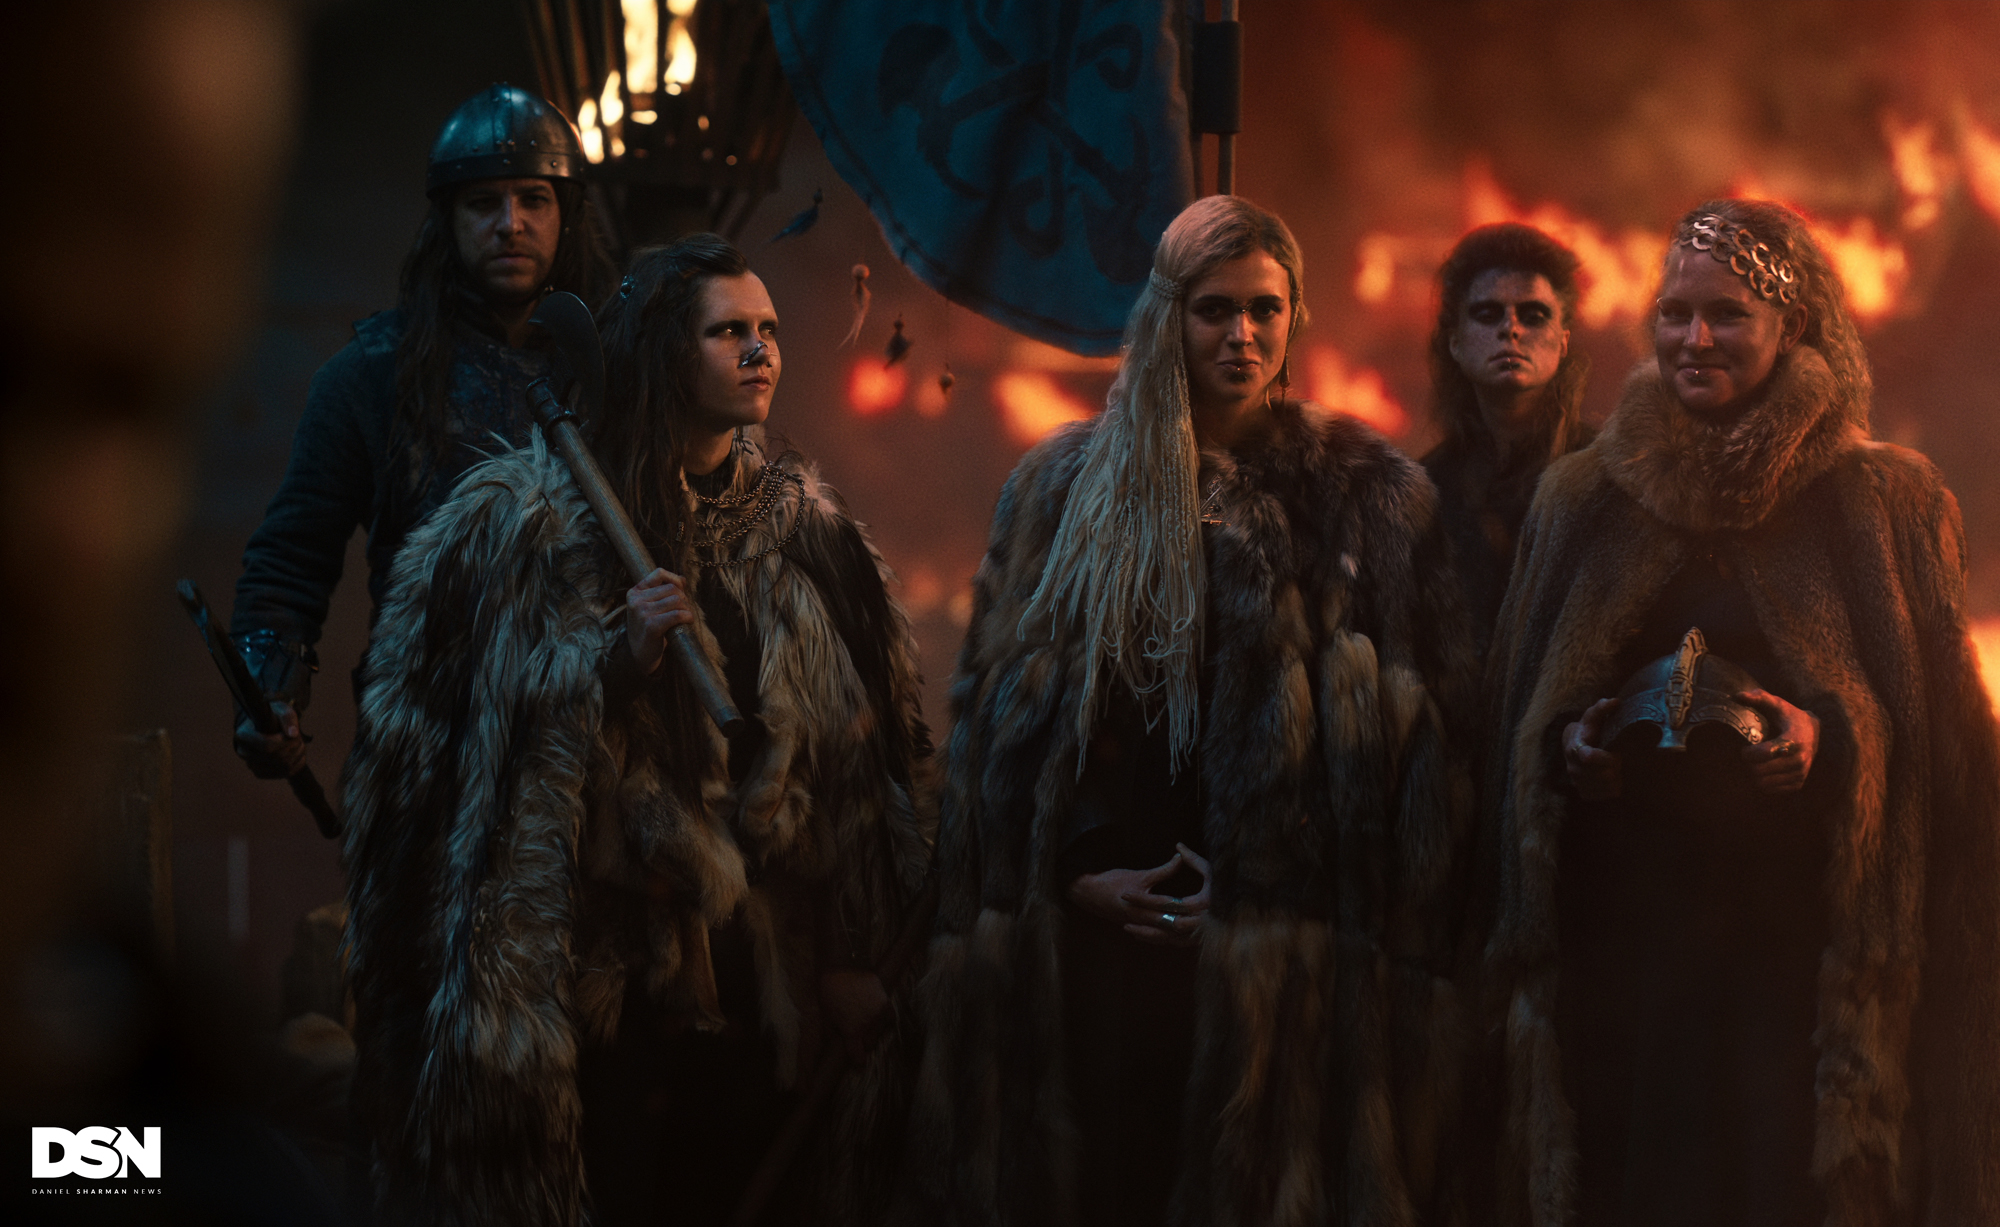 1x05 - The Joining - Team Ice King